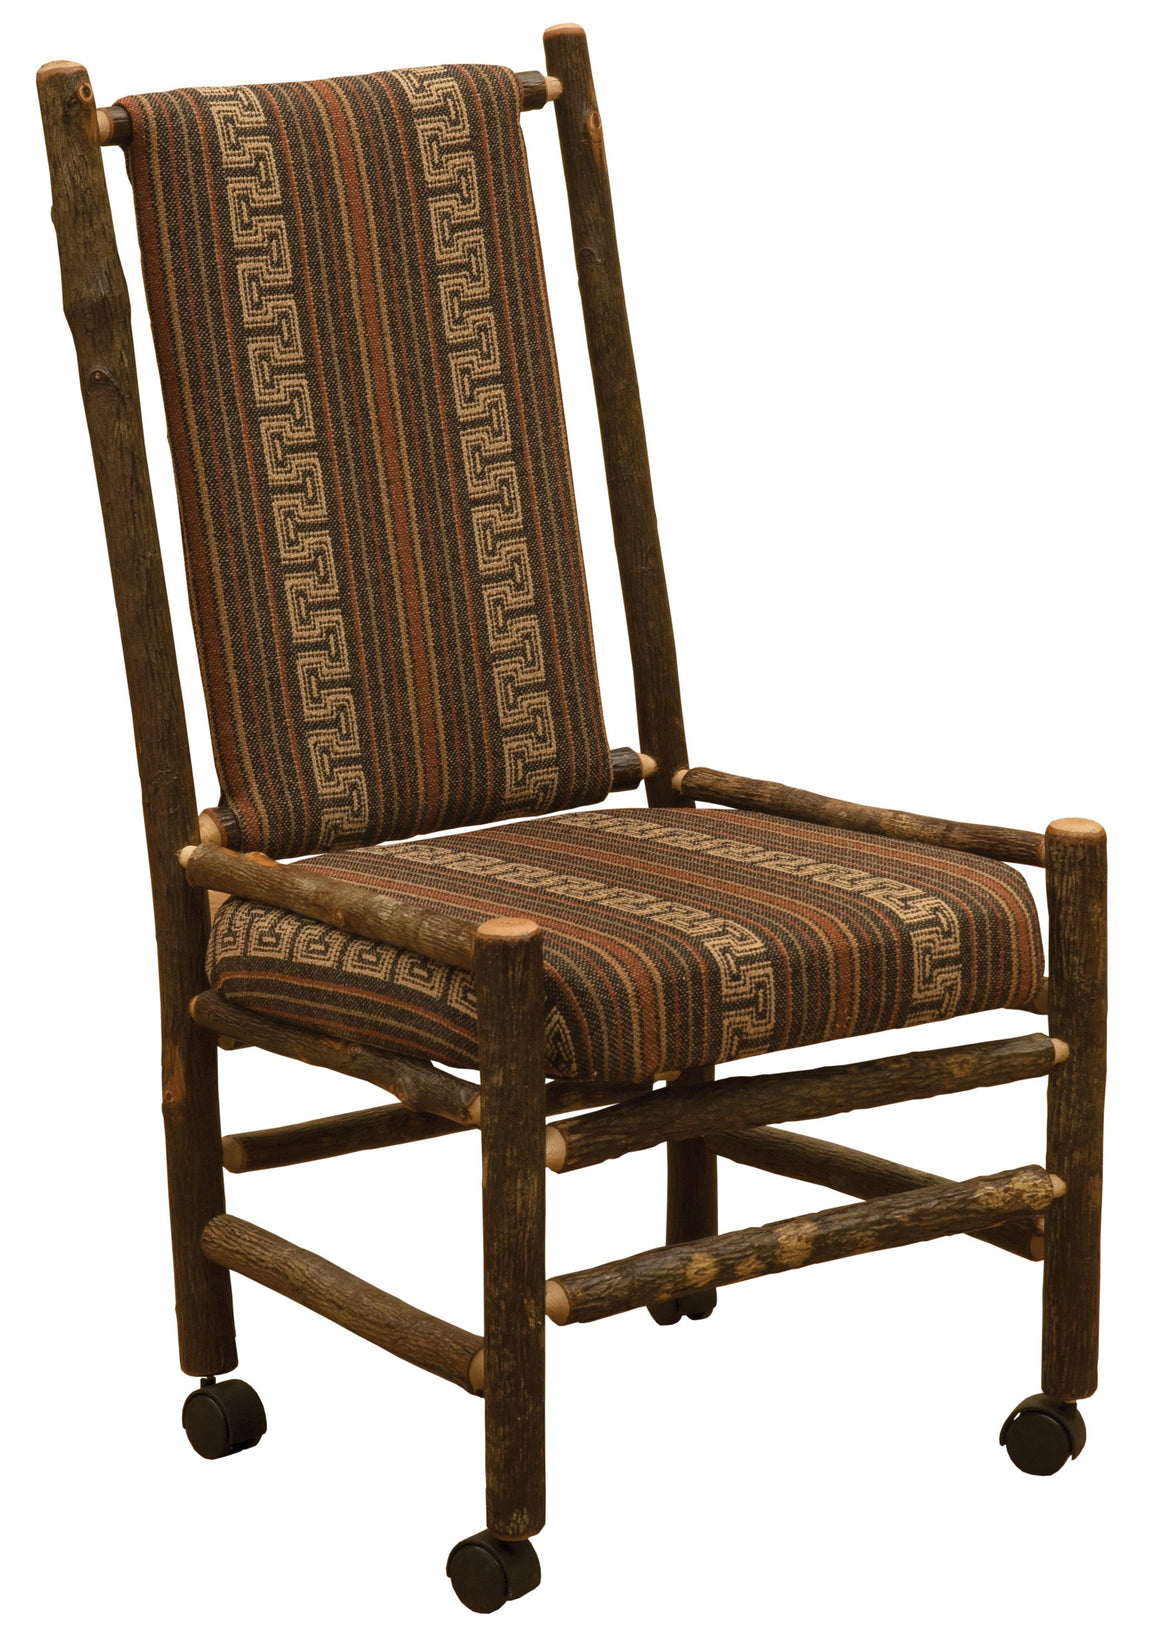 Natural Hickory Log Executive Chair - Upholstered Back and Seat on Casters-Rustic Deco Incorporated